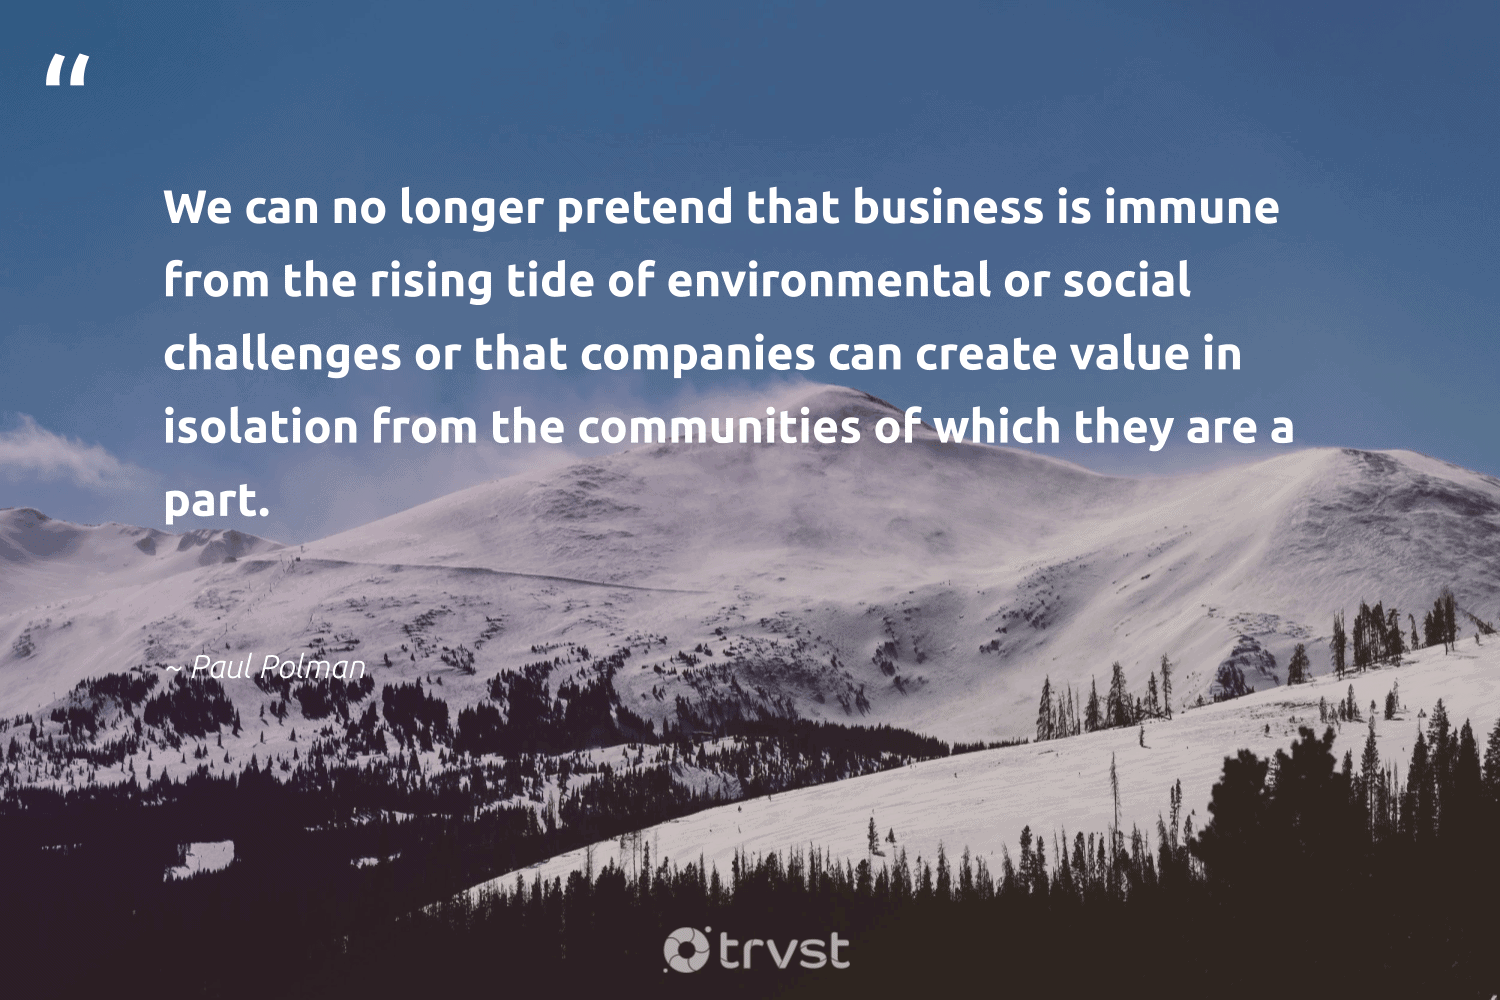 """""""We can no longer pretend that business is immune from the rising tide of environmental or social challenges or that companies can create value in isolation from the communities of which they are a part.""""  - Paul Polman #trvst #quotes #environmental #communities #weareallone #thinkgreen #dogood #impact #socialchange #takeaction #sharedresponsibility #beinspired"""